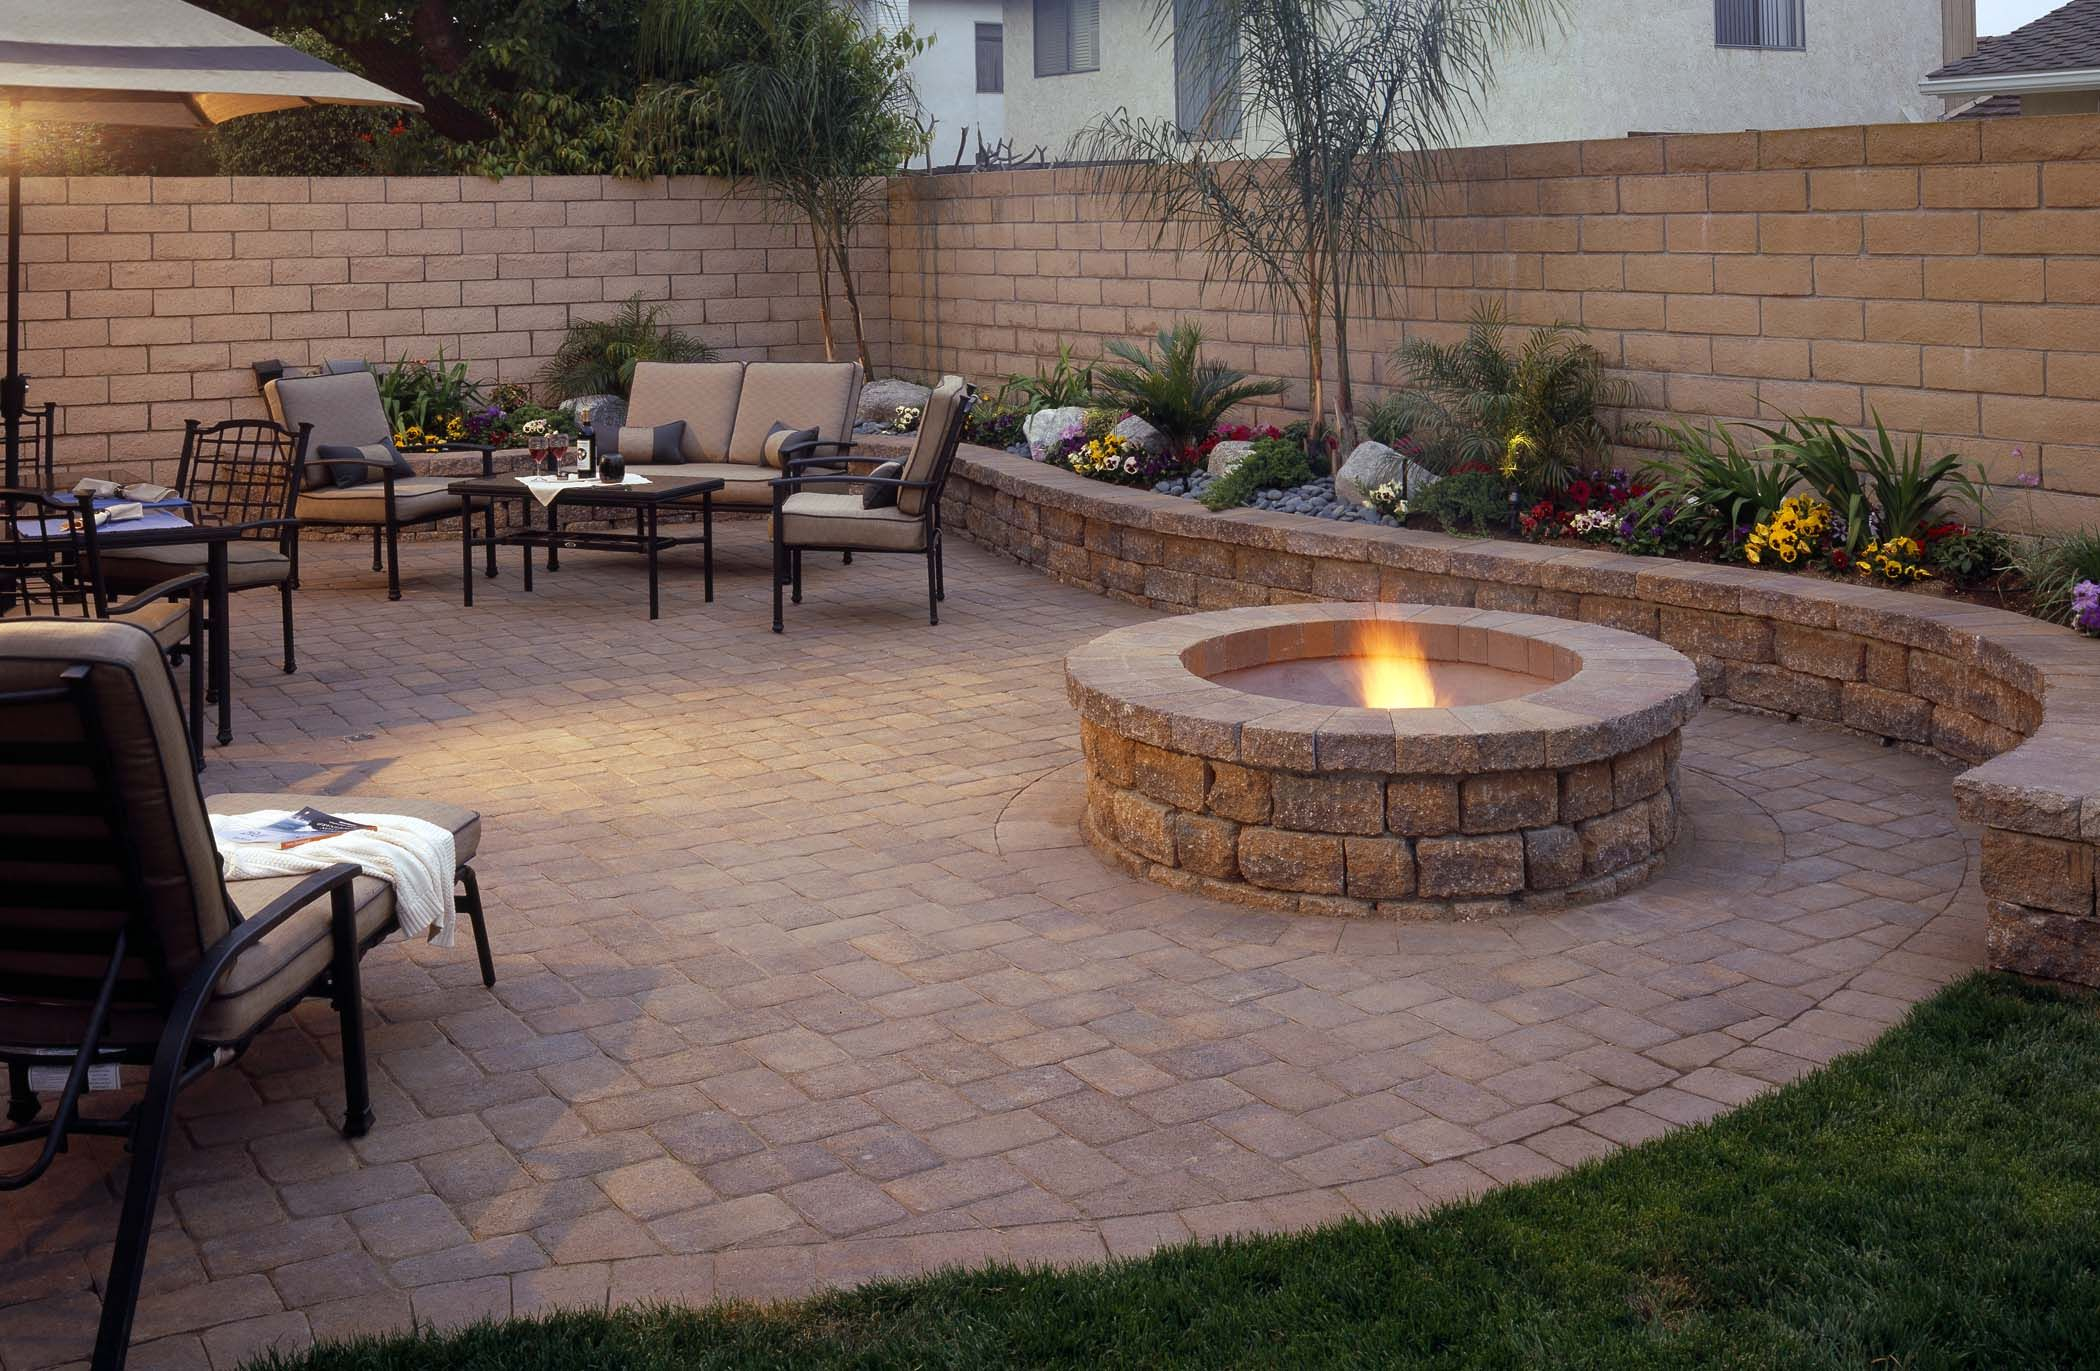 How To Install Best Backyard Paver Patio Ideas Design Idea with regard to 10 Smart Tricks of How to Build Backyard Paver Ideas